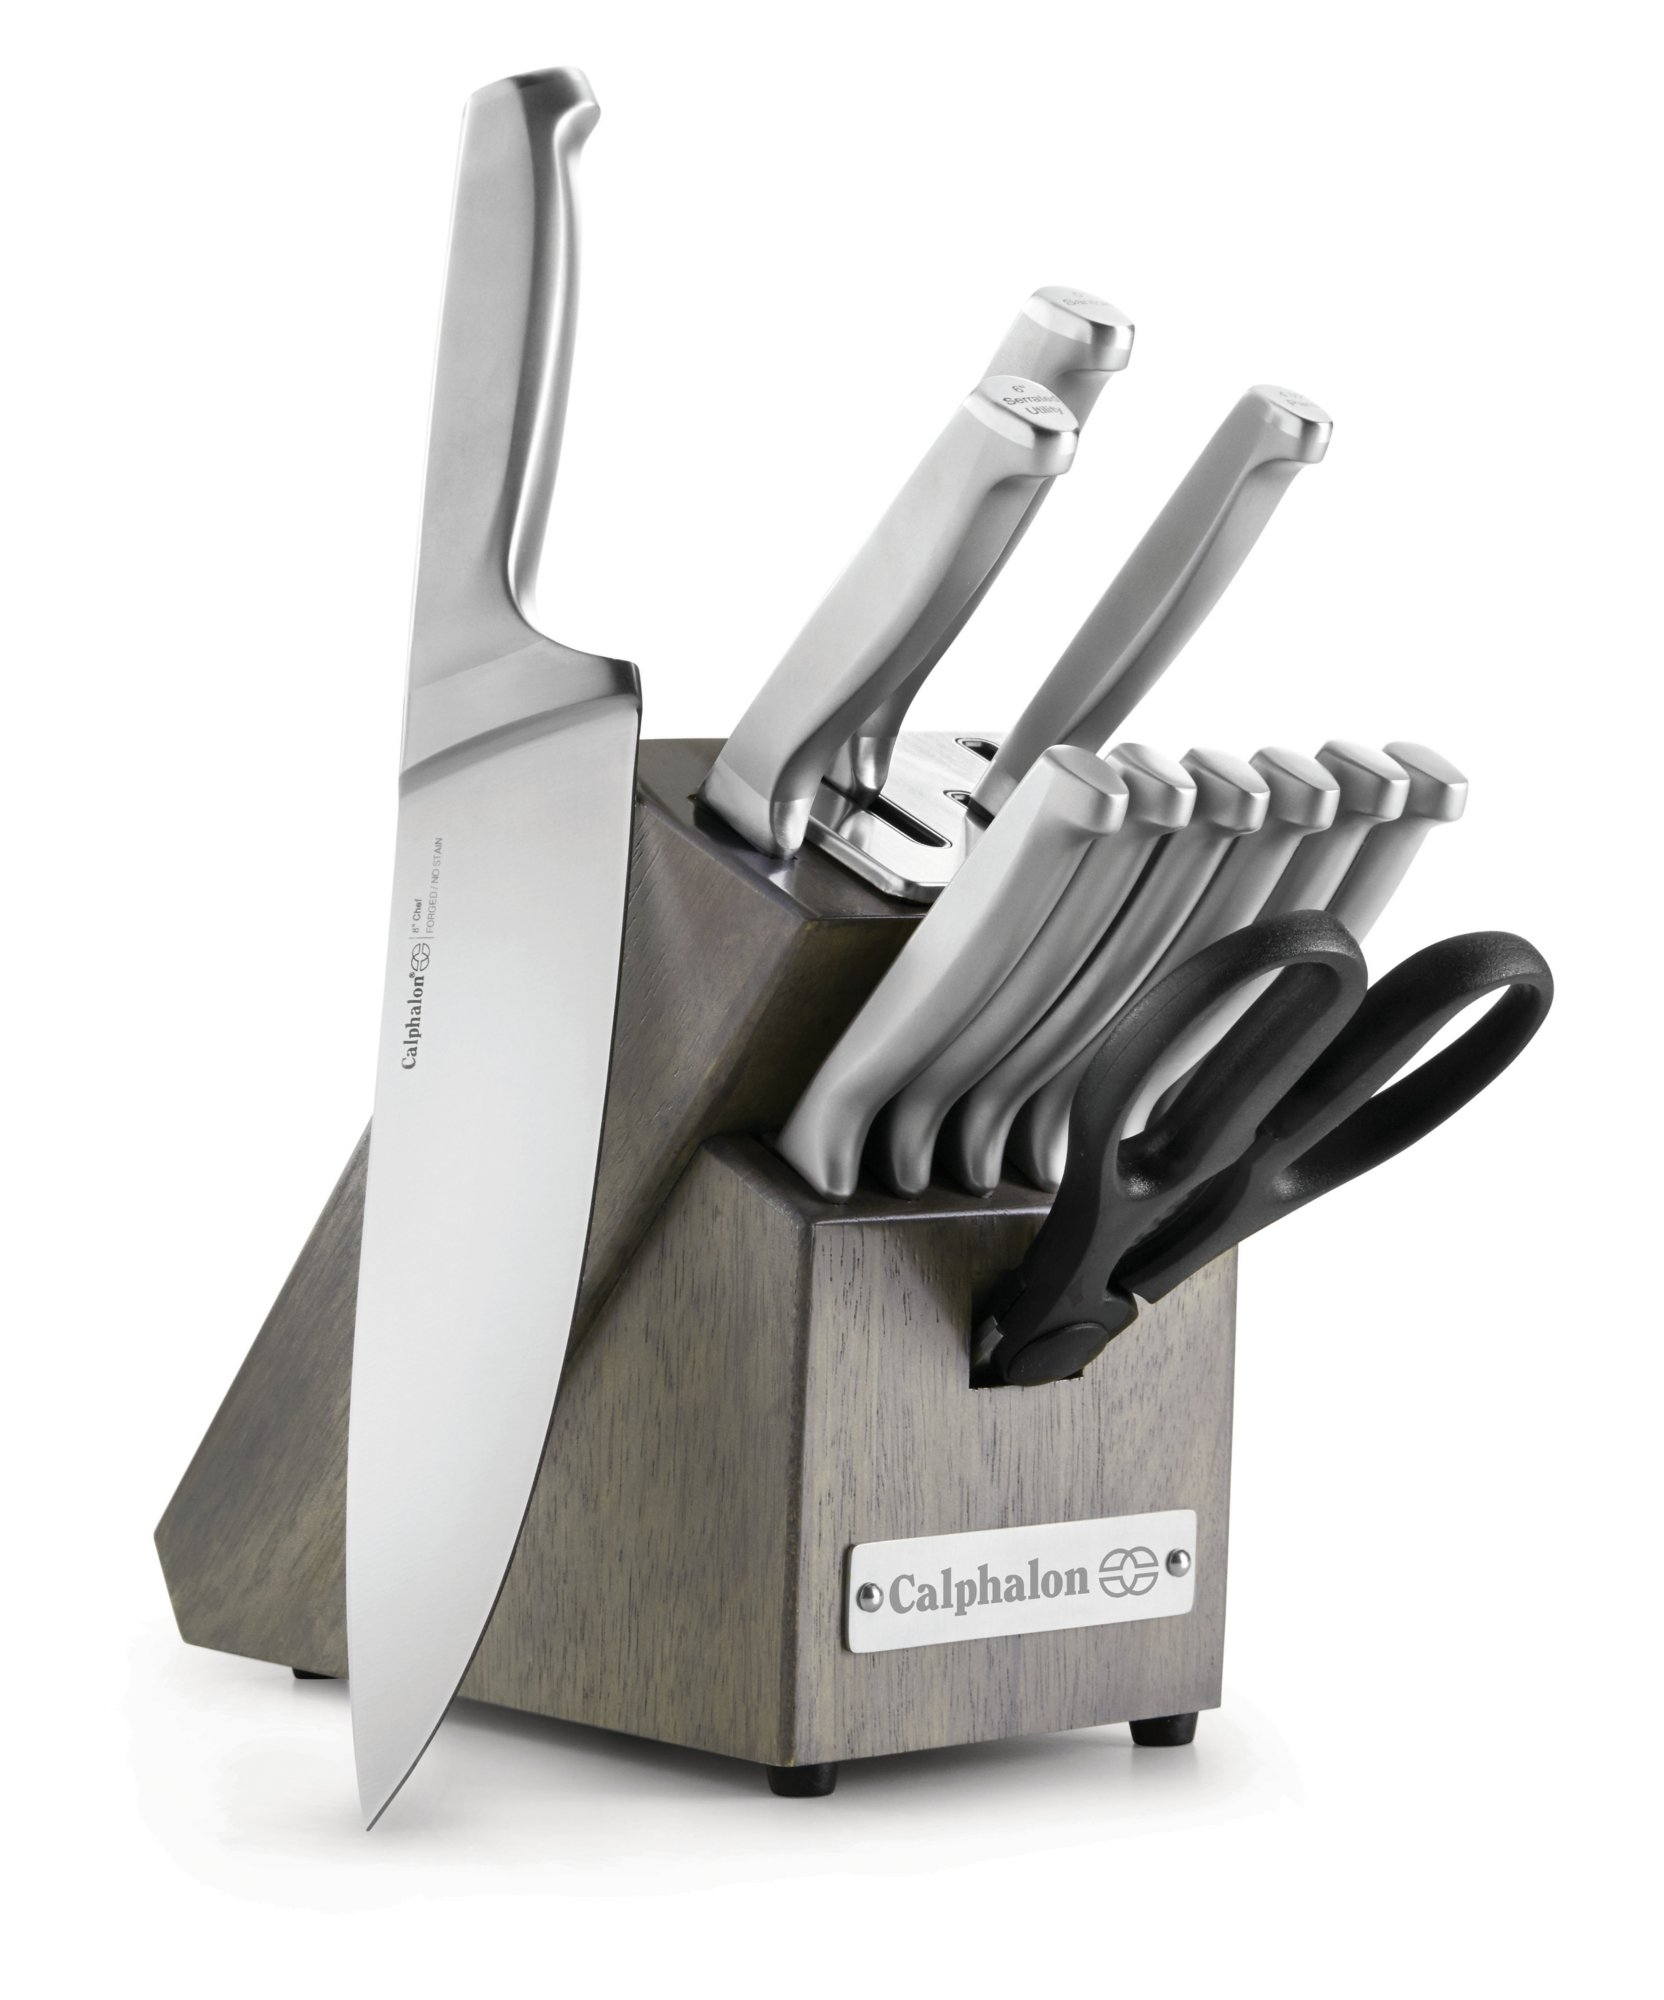 Calphalon Classic Self-Sharpening Stainless Steel 12-piece Knife Block Set